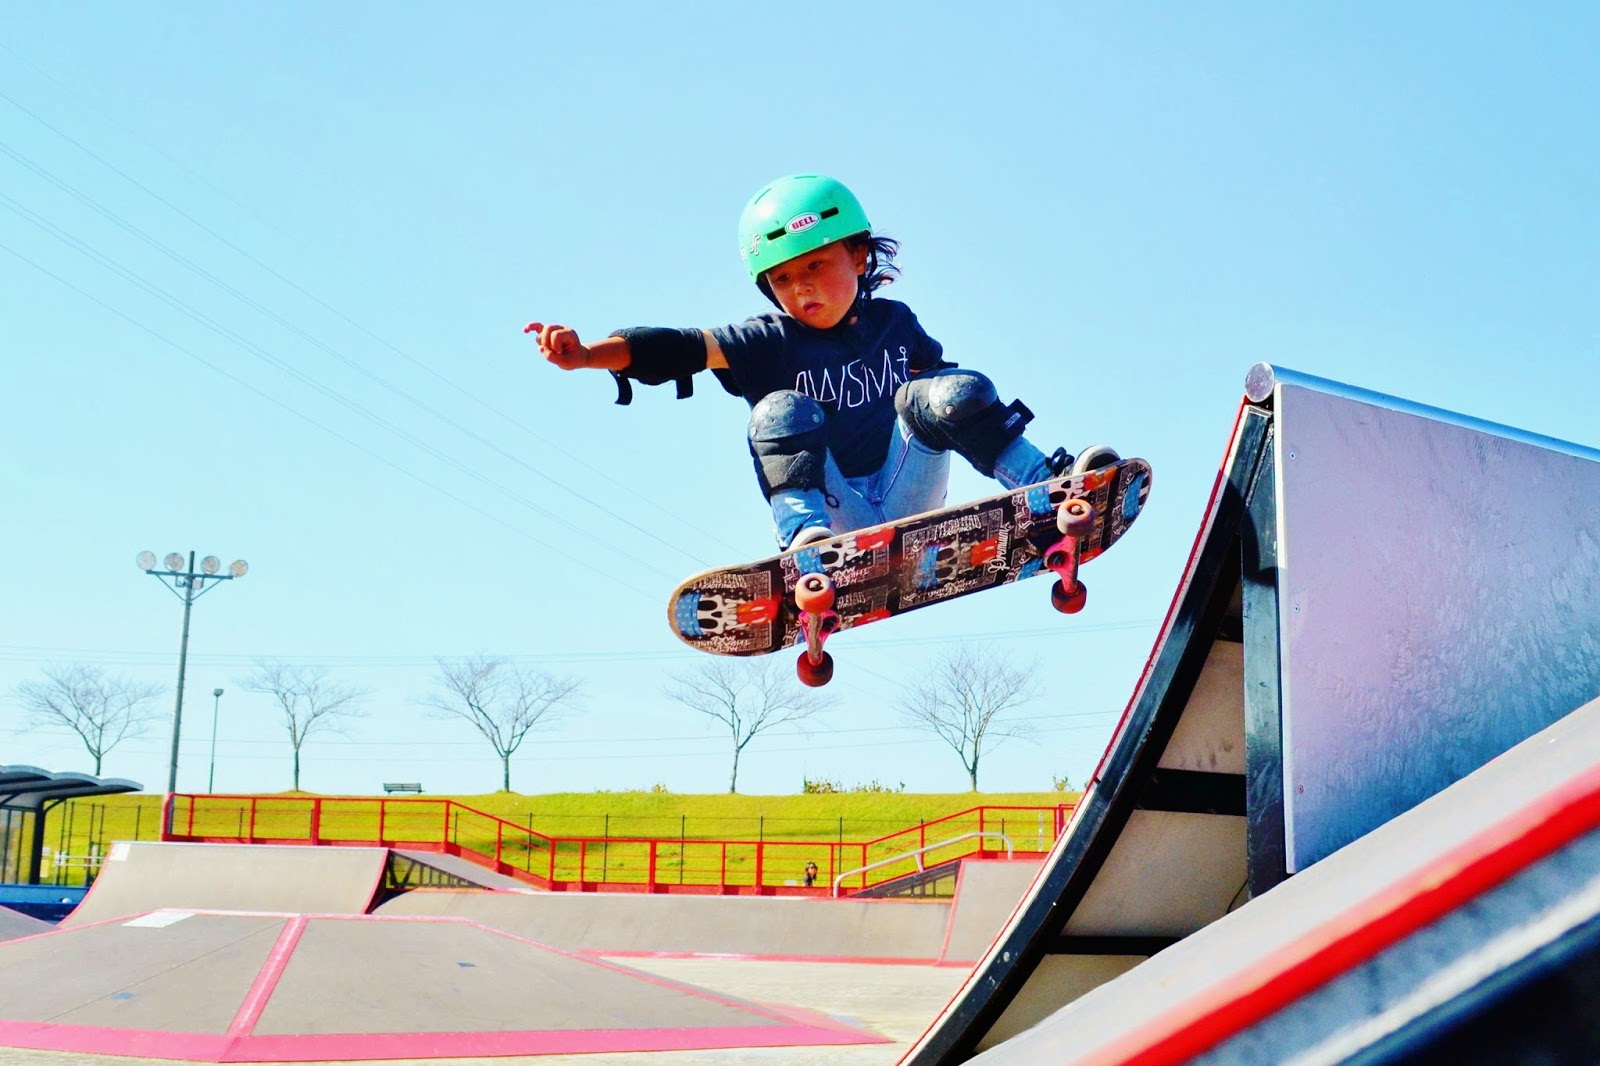 Sky Brown - the youngest female to skate the Vans US Open Pro Series